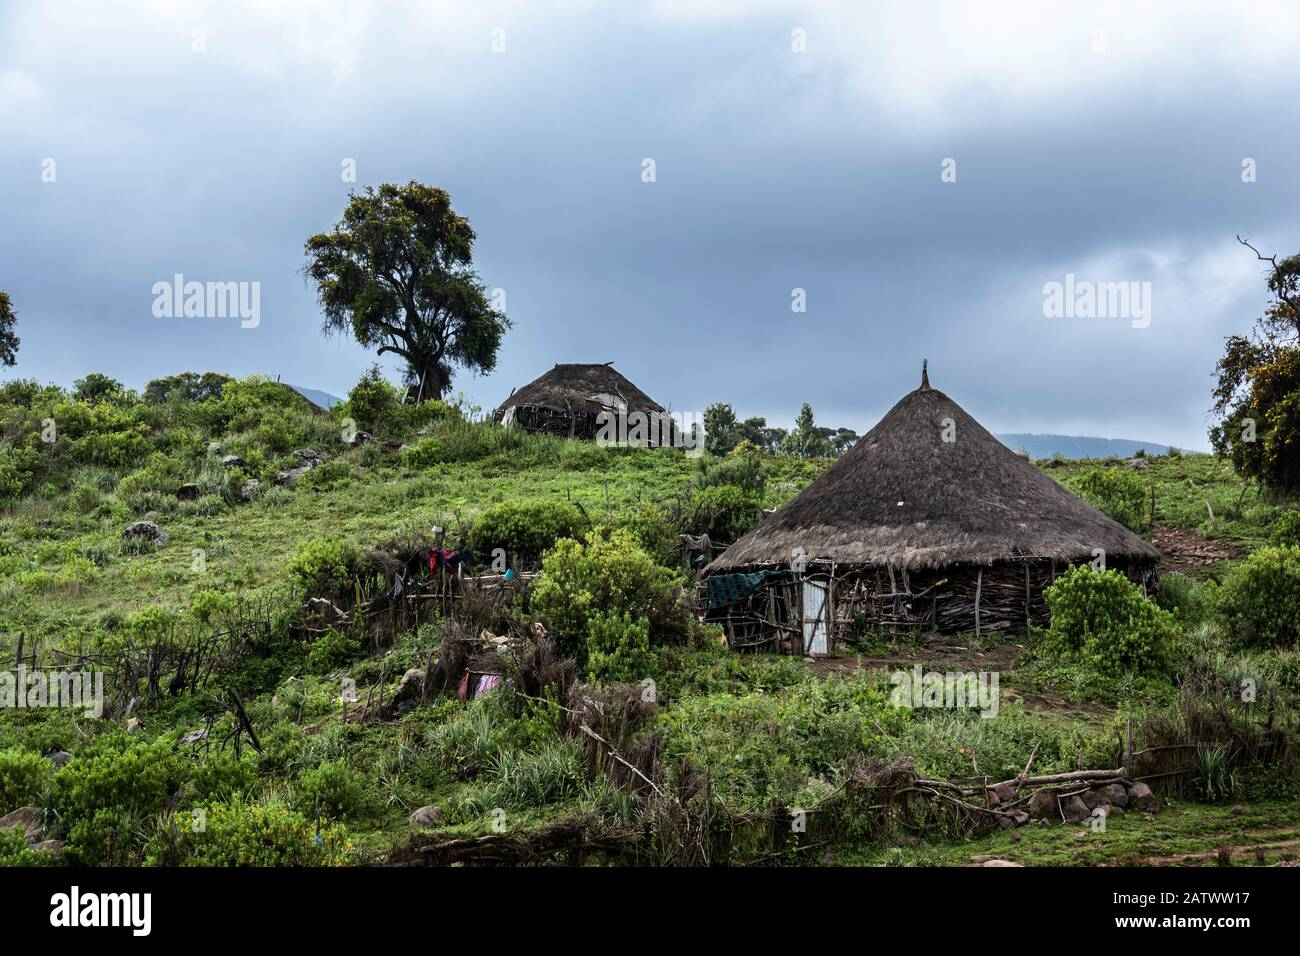 ethiopia bale mountains nationalpark Stock Photo